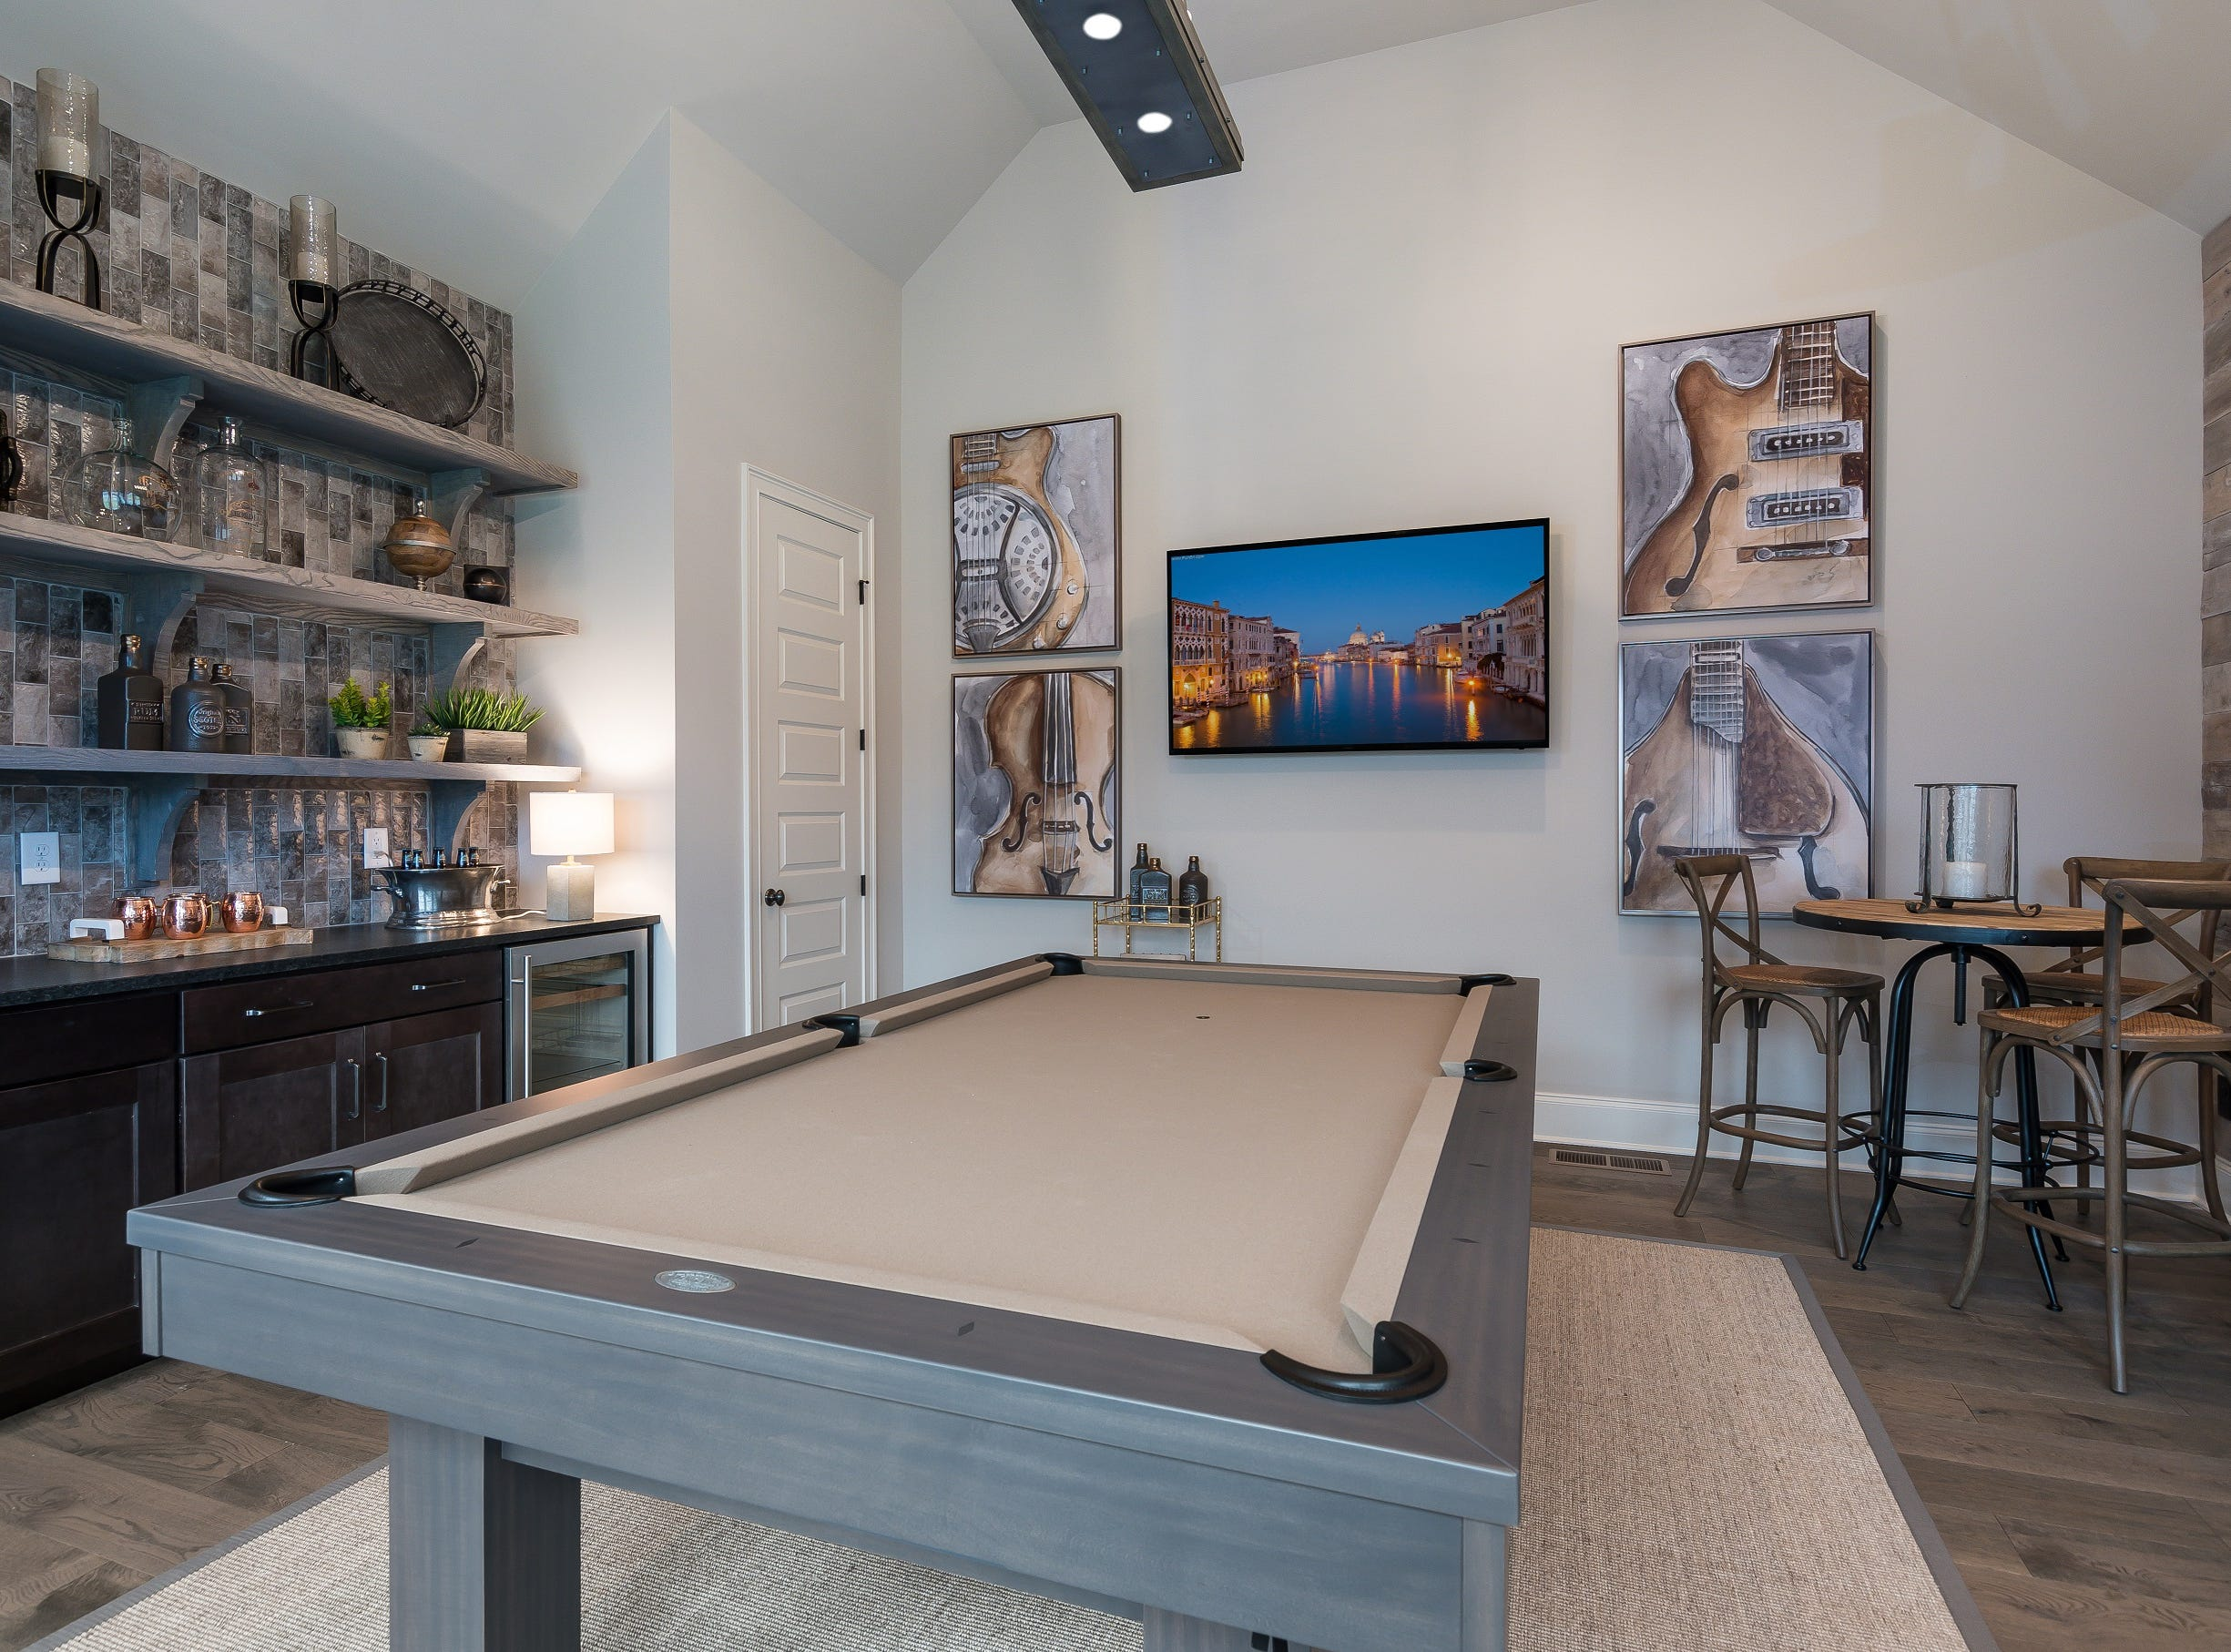 Another feature in this model home is a game room on the main floor.